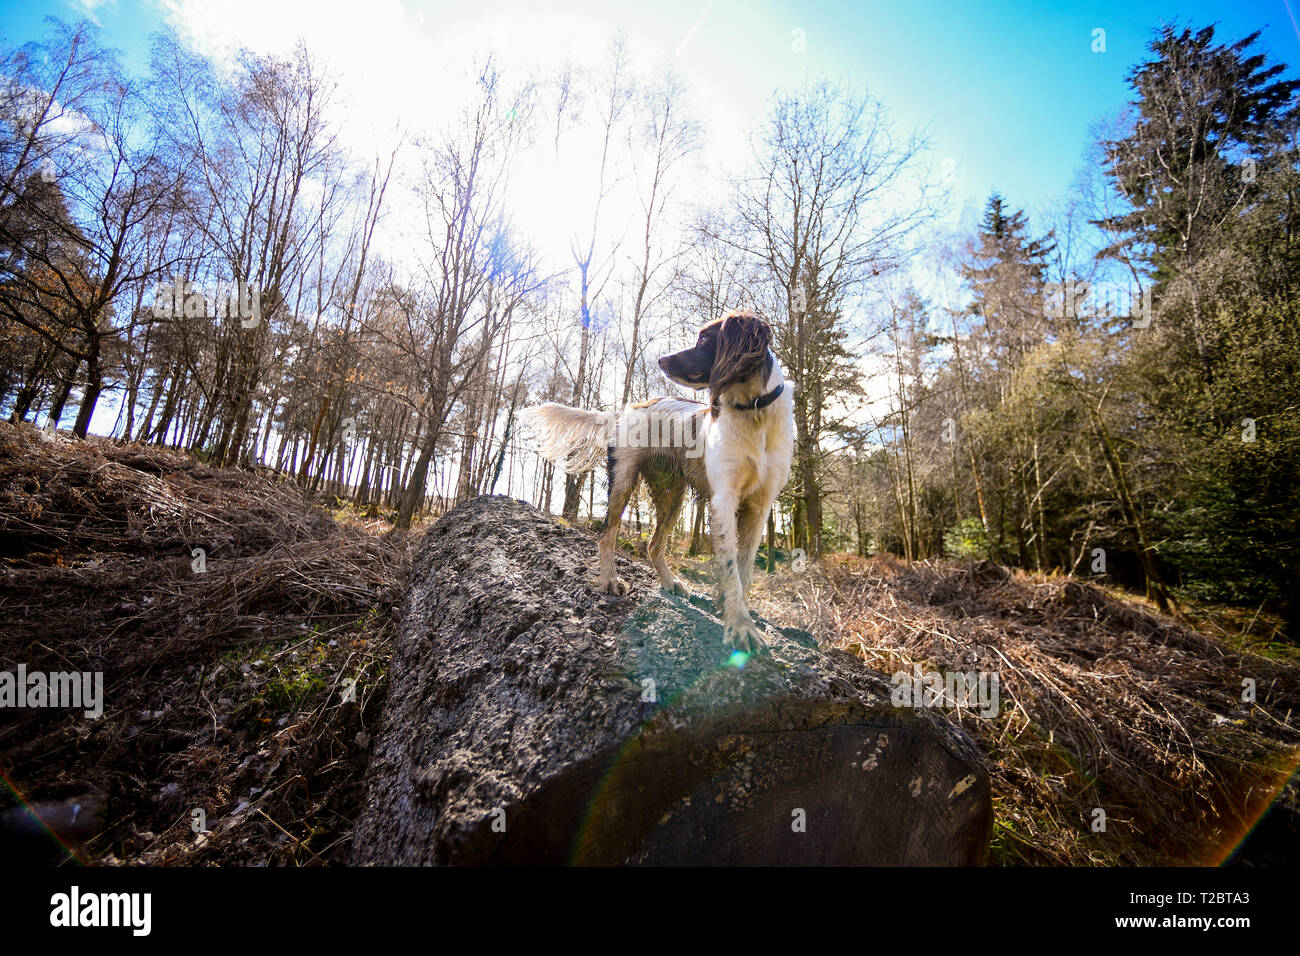 A young (1 Year) English Springer Spaniel perches on top of a fallen tree against a forest backdrop that is backlit with the sun flaring into camera. Stock Photo